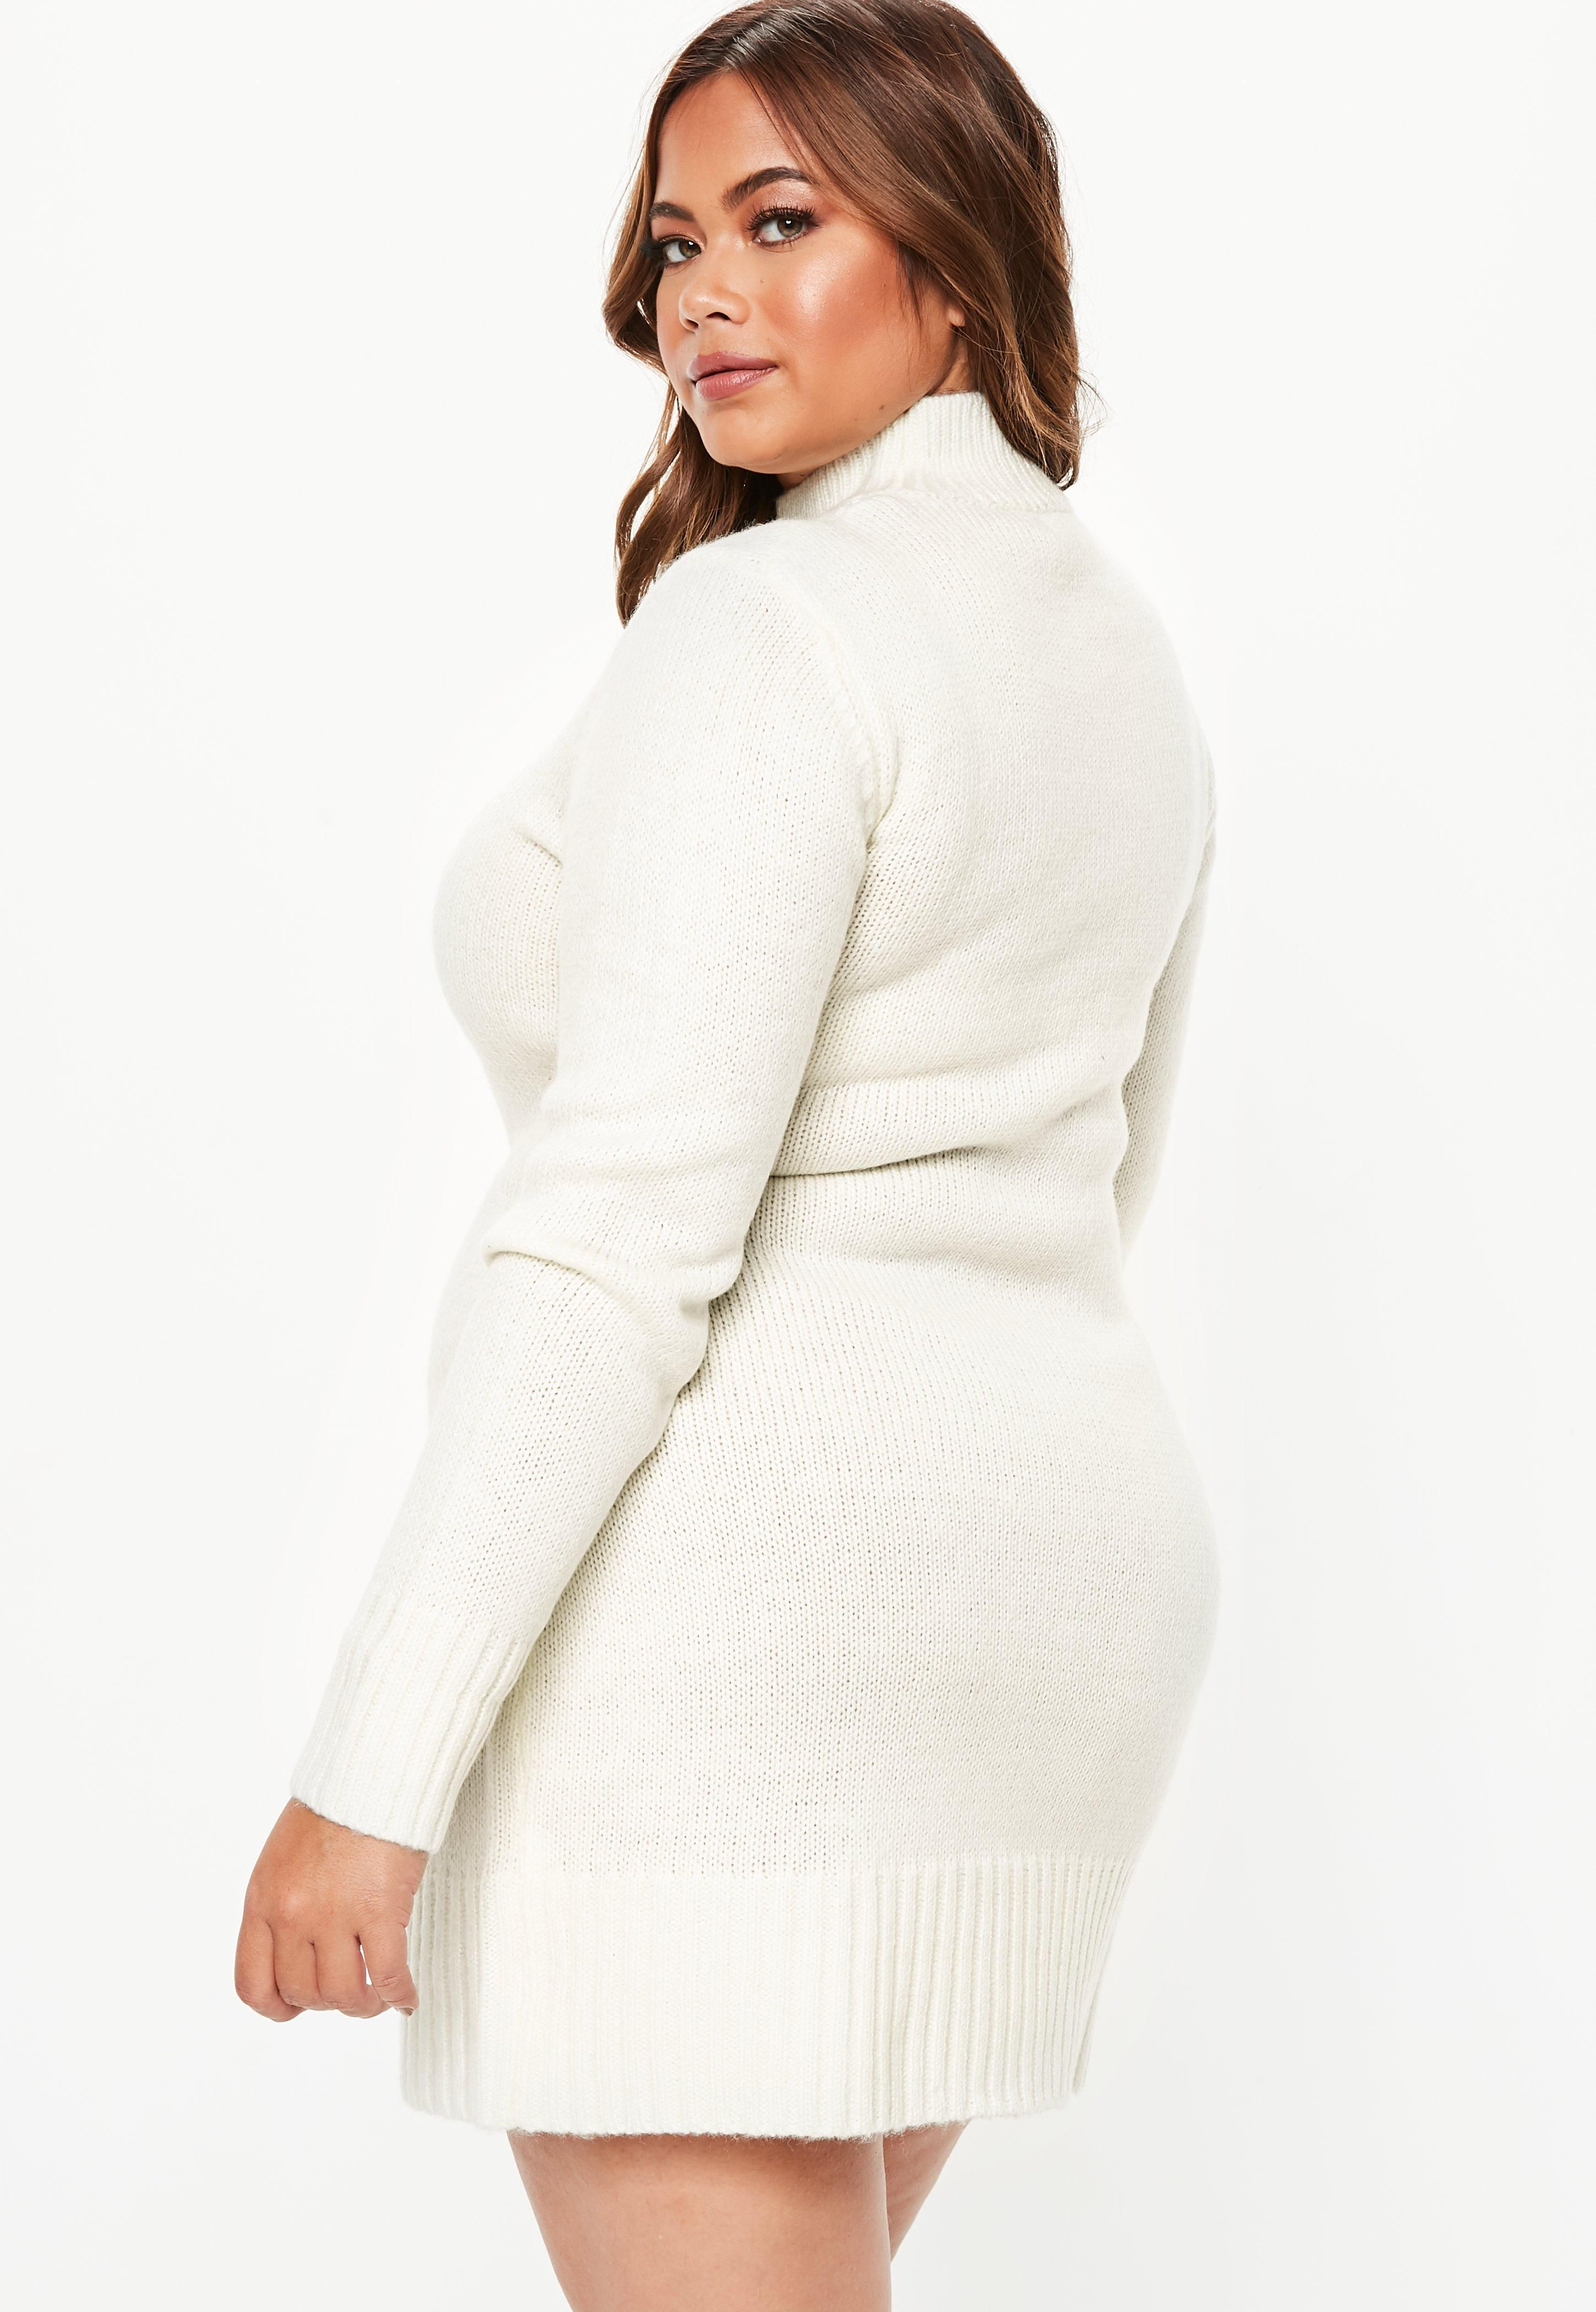 72ddbcfb1d9 Plus Size Cream Turtle Neck Sweater Dress  Sponsored  Turtle